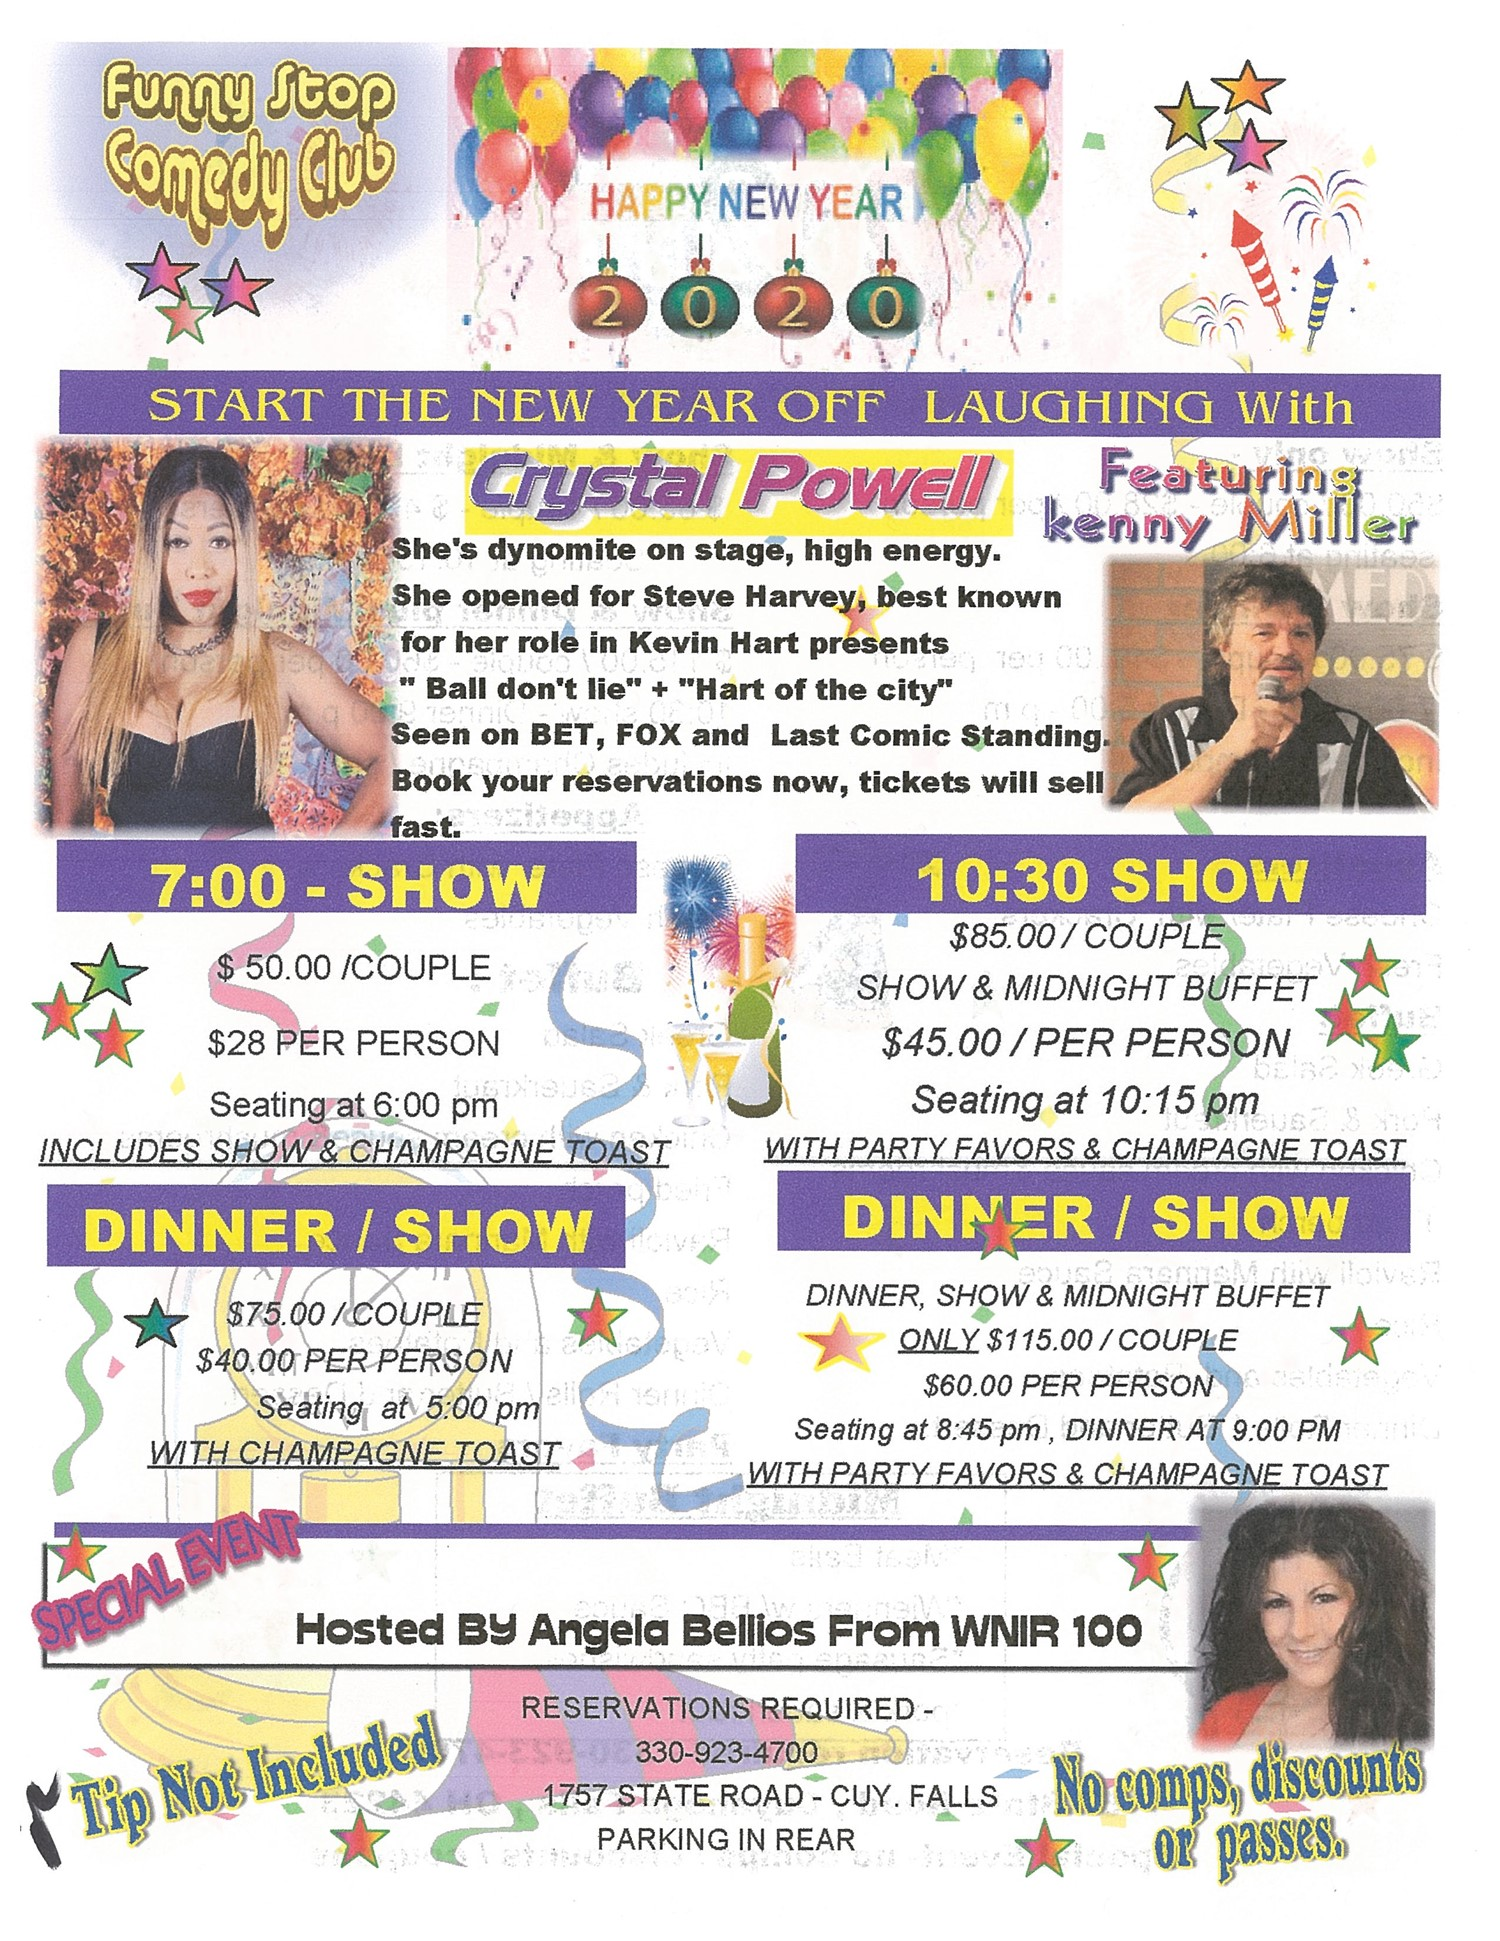 New Years Eve Show 7Pm Crystal Powell Headlining, Kenny Miller, Angela Bellios on Dec 31, 19:00@Funny Stop Comedy Club - Buy tickets and Get information on Funny Stop funnystop.online